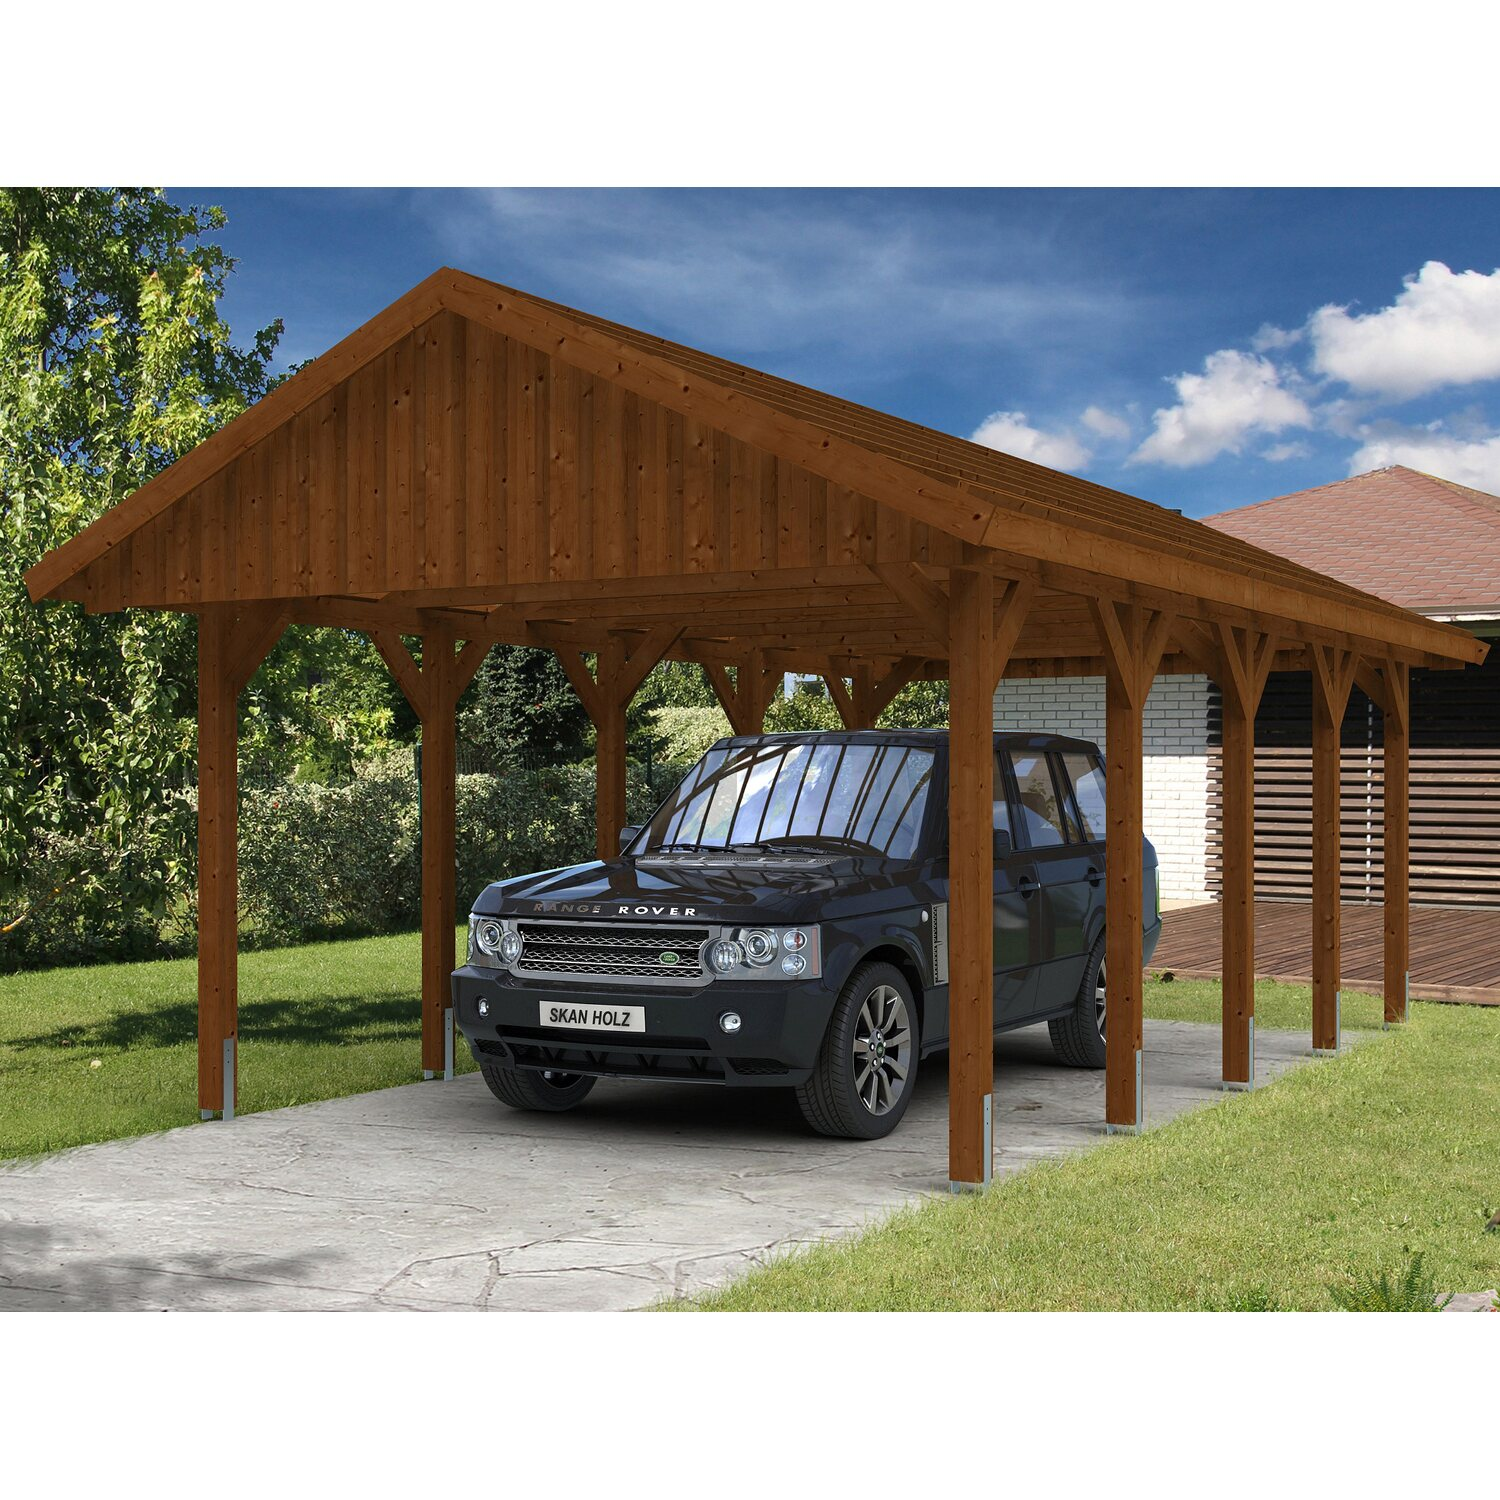 skan holz satteldach carport sauerland 430 cm x 750 cm nussbaum kaufen bei obi. Black Bedroom Furniture Sets. Home Design Ideas